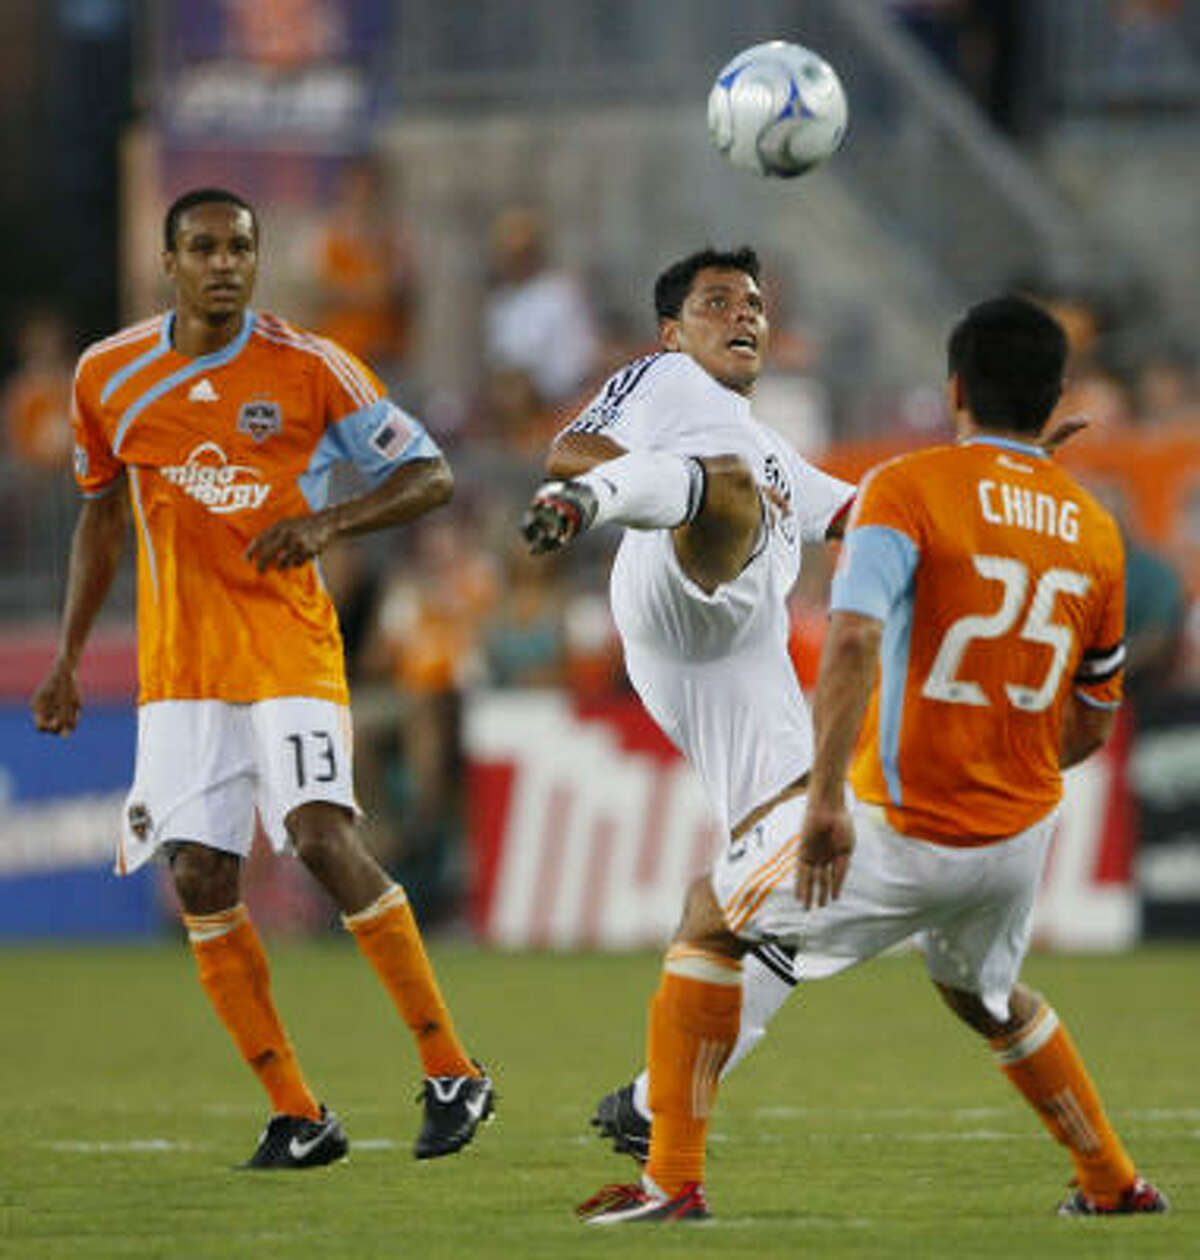 D.C. midfielder Christian Gomez, center, tries to put a foot on a high ball as he's flanked by Ching, right, and Dynamo midfielder Ricardo Clark during the first half.